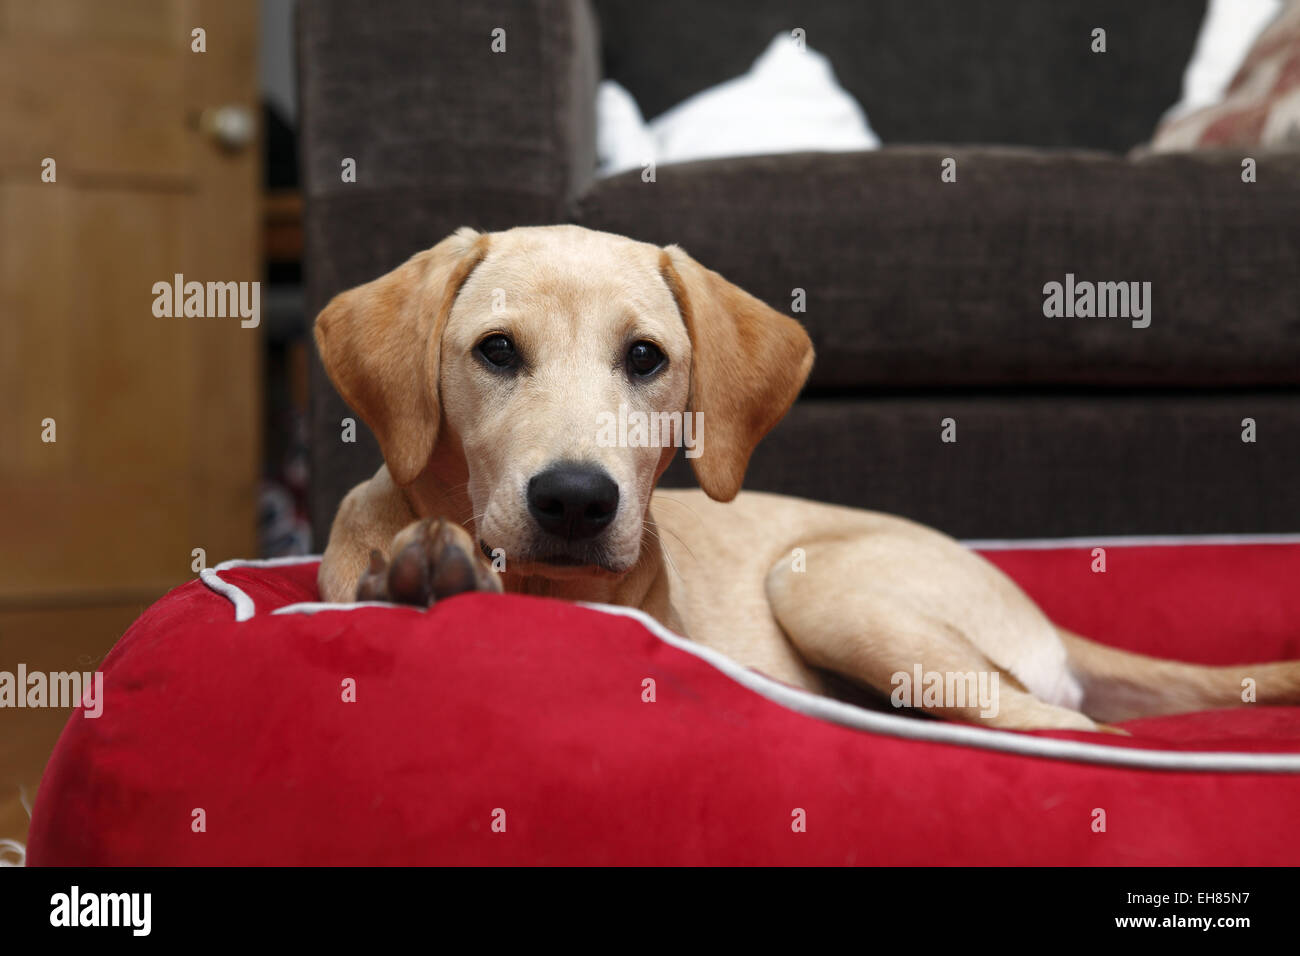 Yellow Labrador Retriever puppy aged 6 months old sleeping in new big bed that will grow into - Stock Image